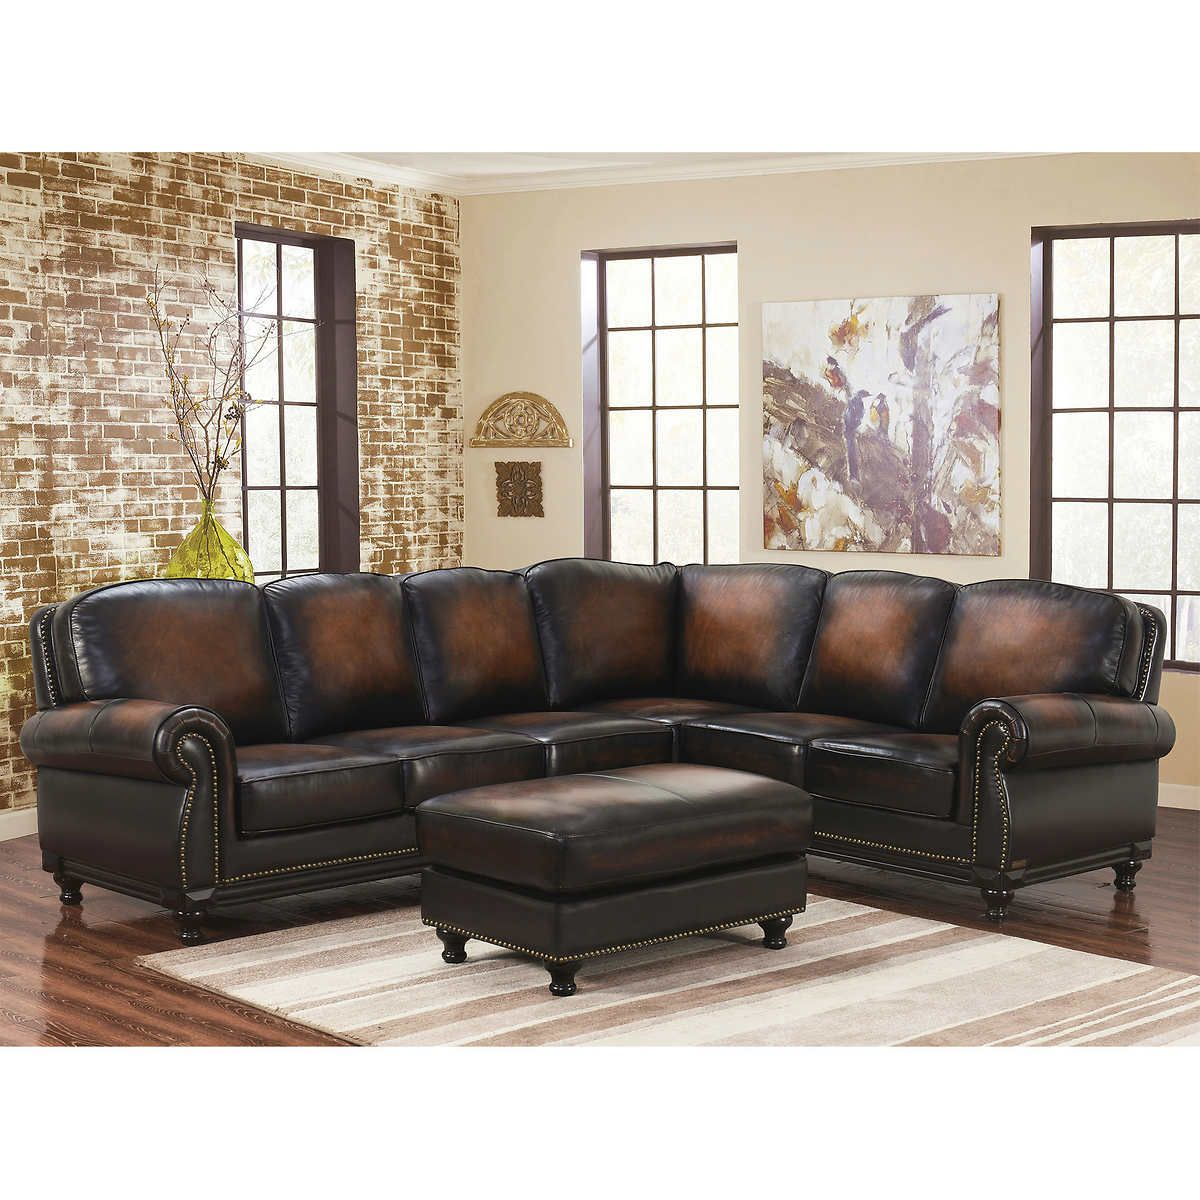 room set sofa design wooden black always to living floor leather furniture how beautiful with clean couch look